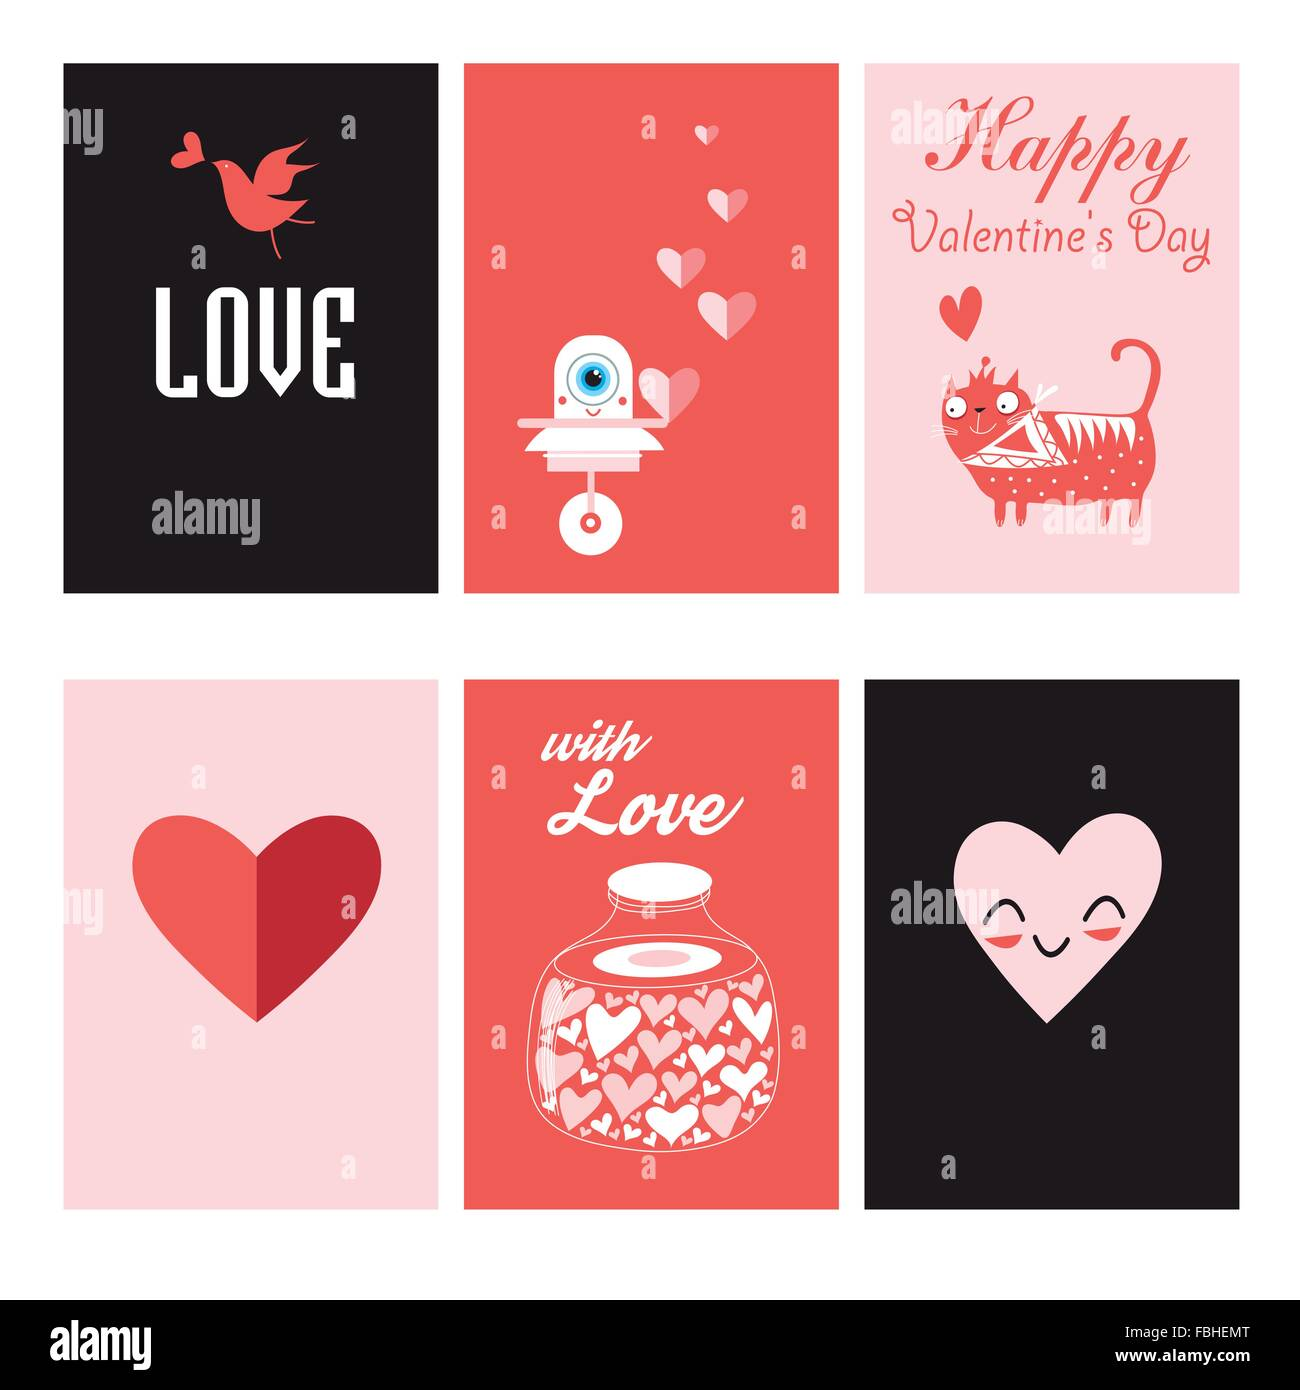 perfect for valentines day stickers